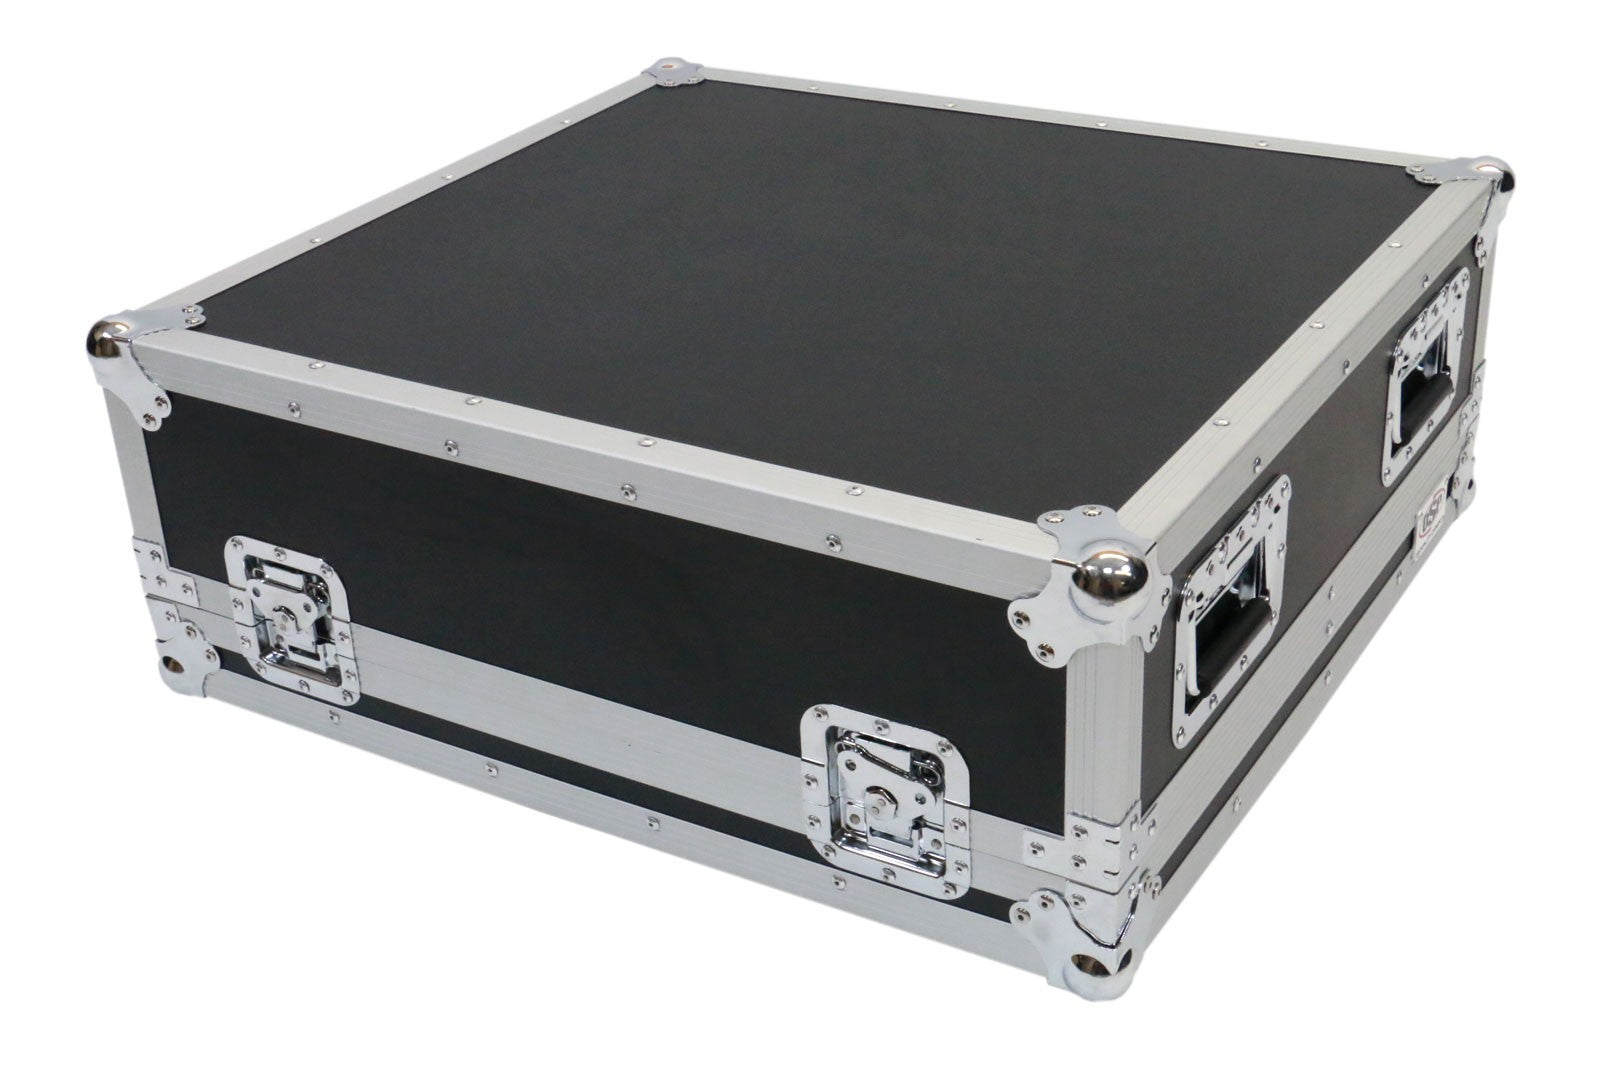 OSP ATA-QU24 Case for Allen & Heath QU24 Digital Mixer